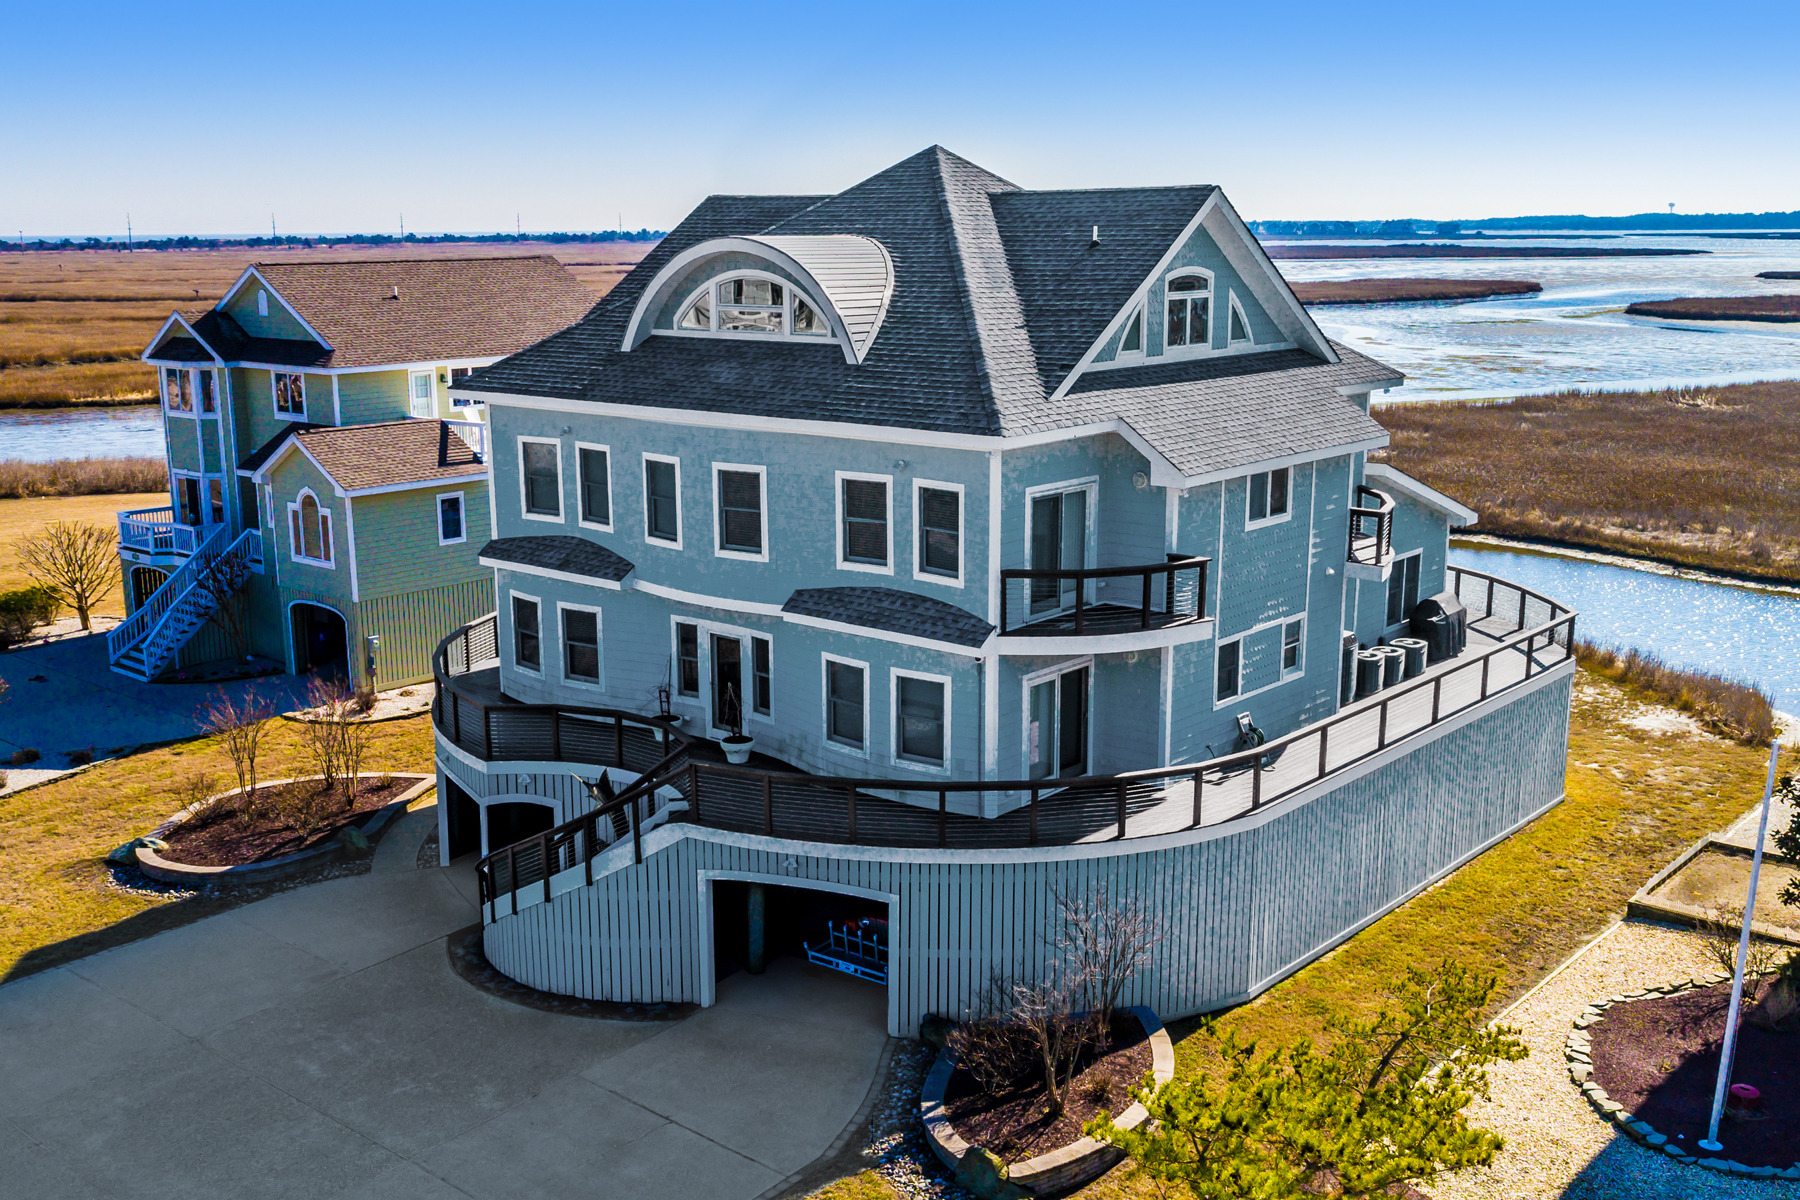 Single Family Home for Sale at 8 S Shore Drive , Bethany Beach, DE 19930 Bethany Beach, Delaware 19930 United States